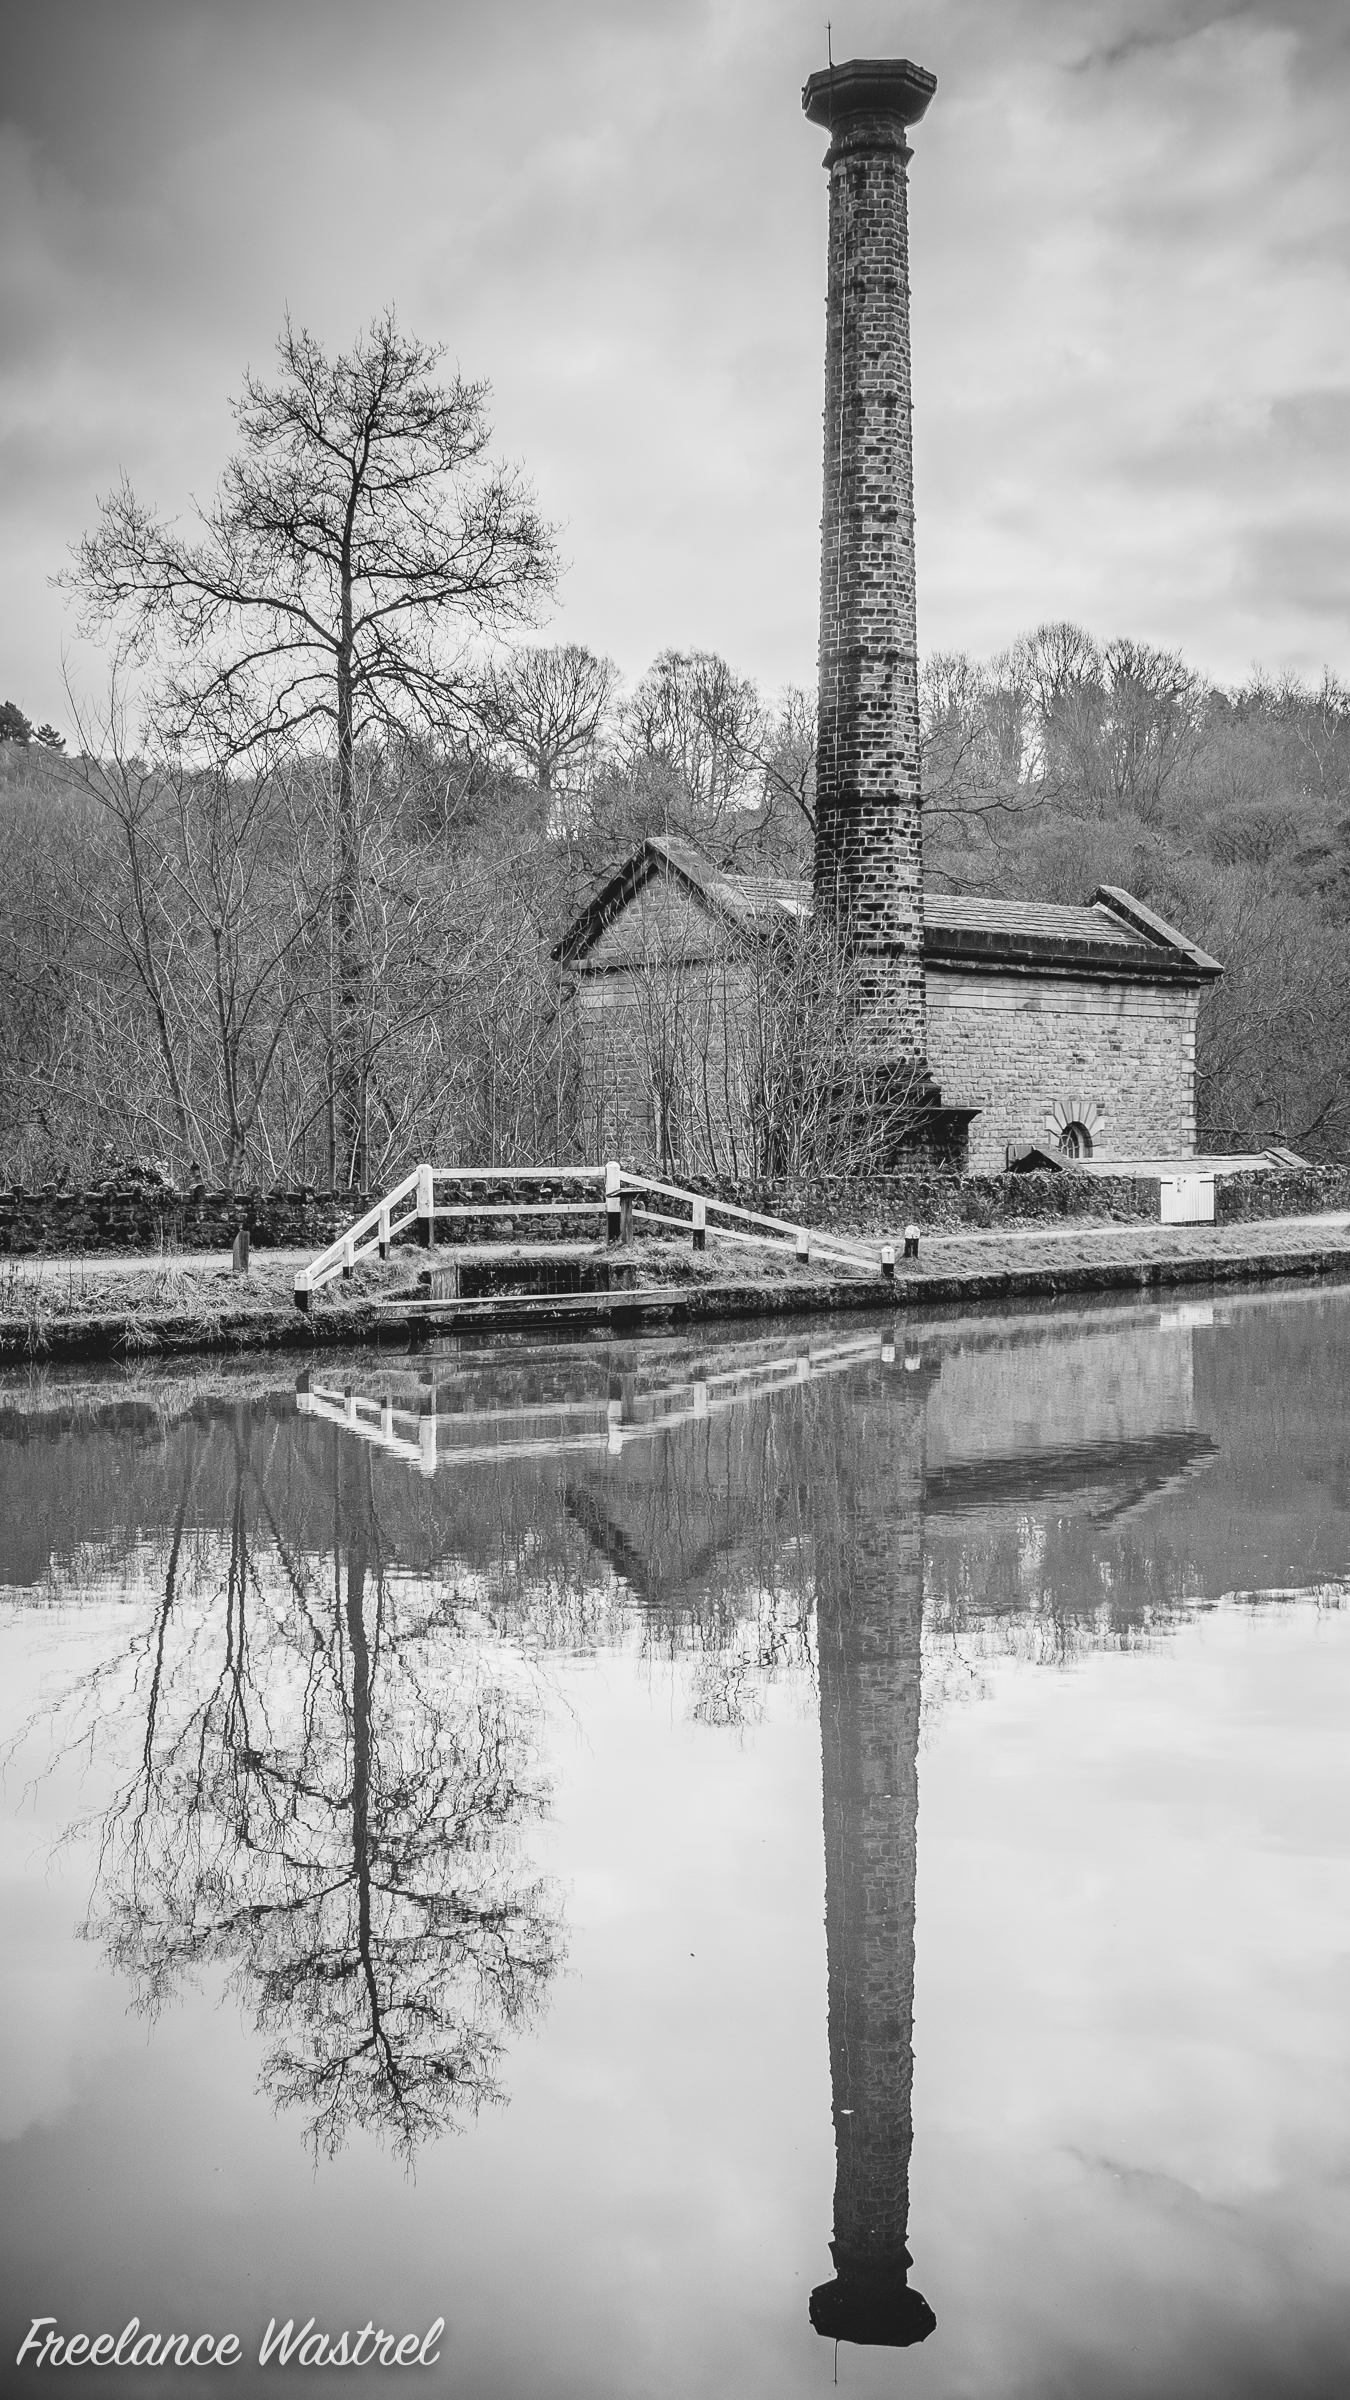 Leawood Pumphouse, January 2018